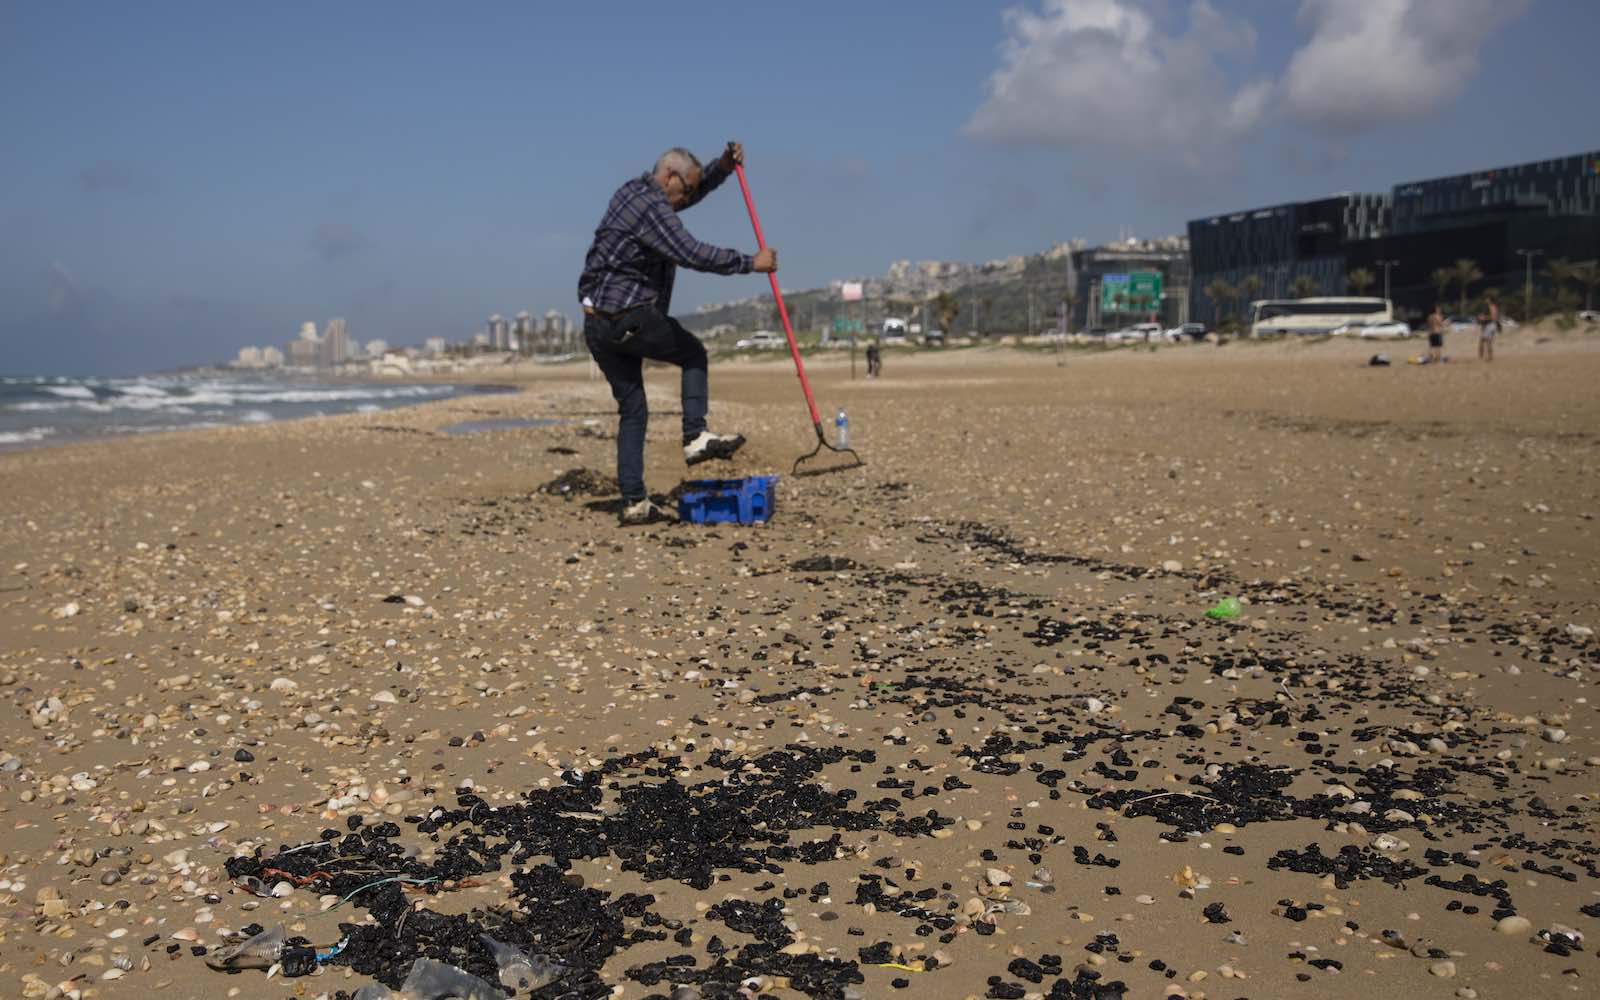 Cleaning tar from a beach in Haifa, Israel, following a suspicious oil spill in the Mediterranean, 25 February (Amir Levy/Getty Images)